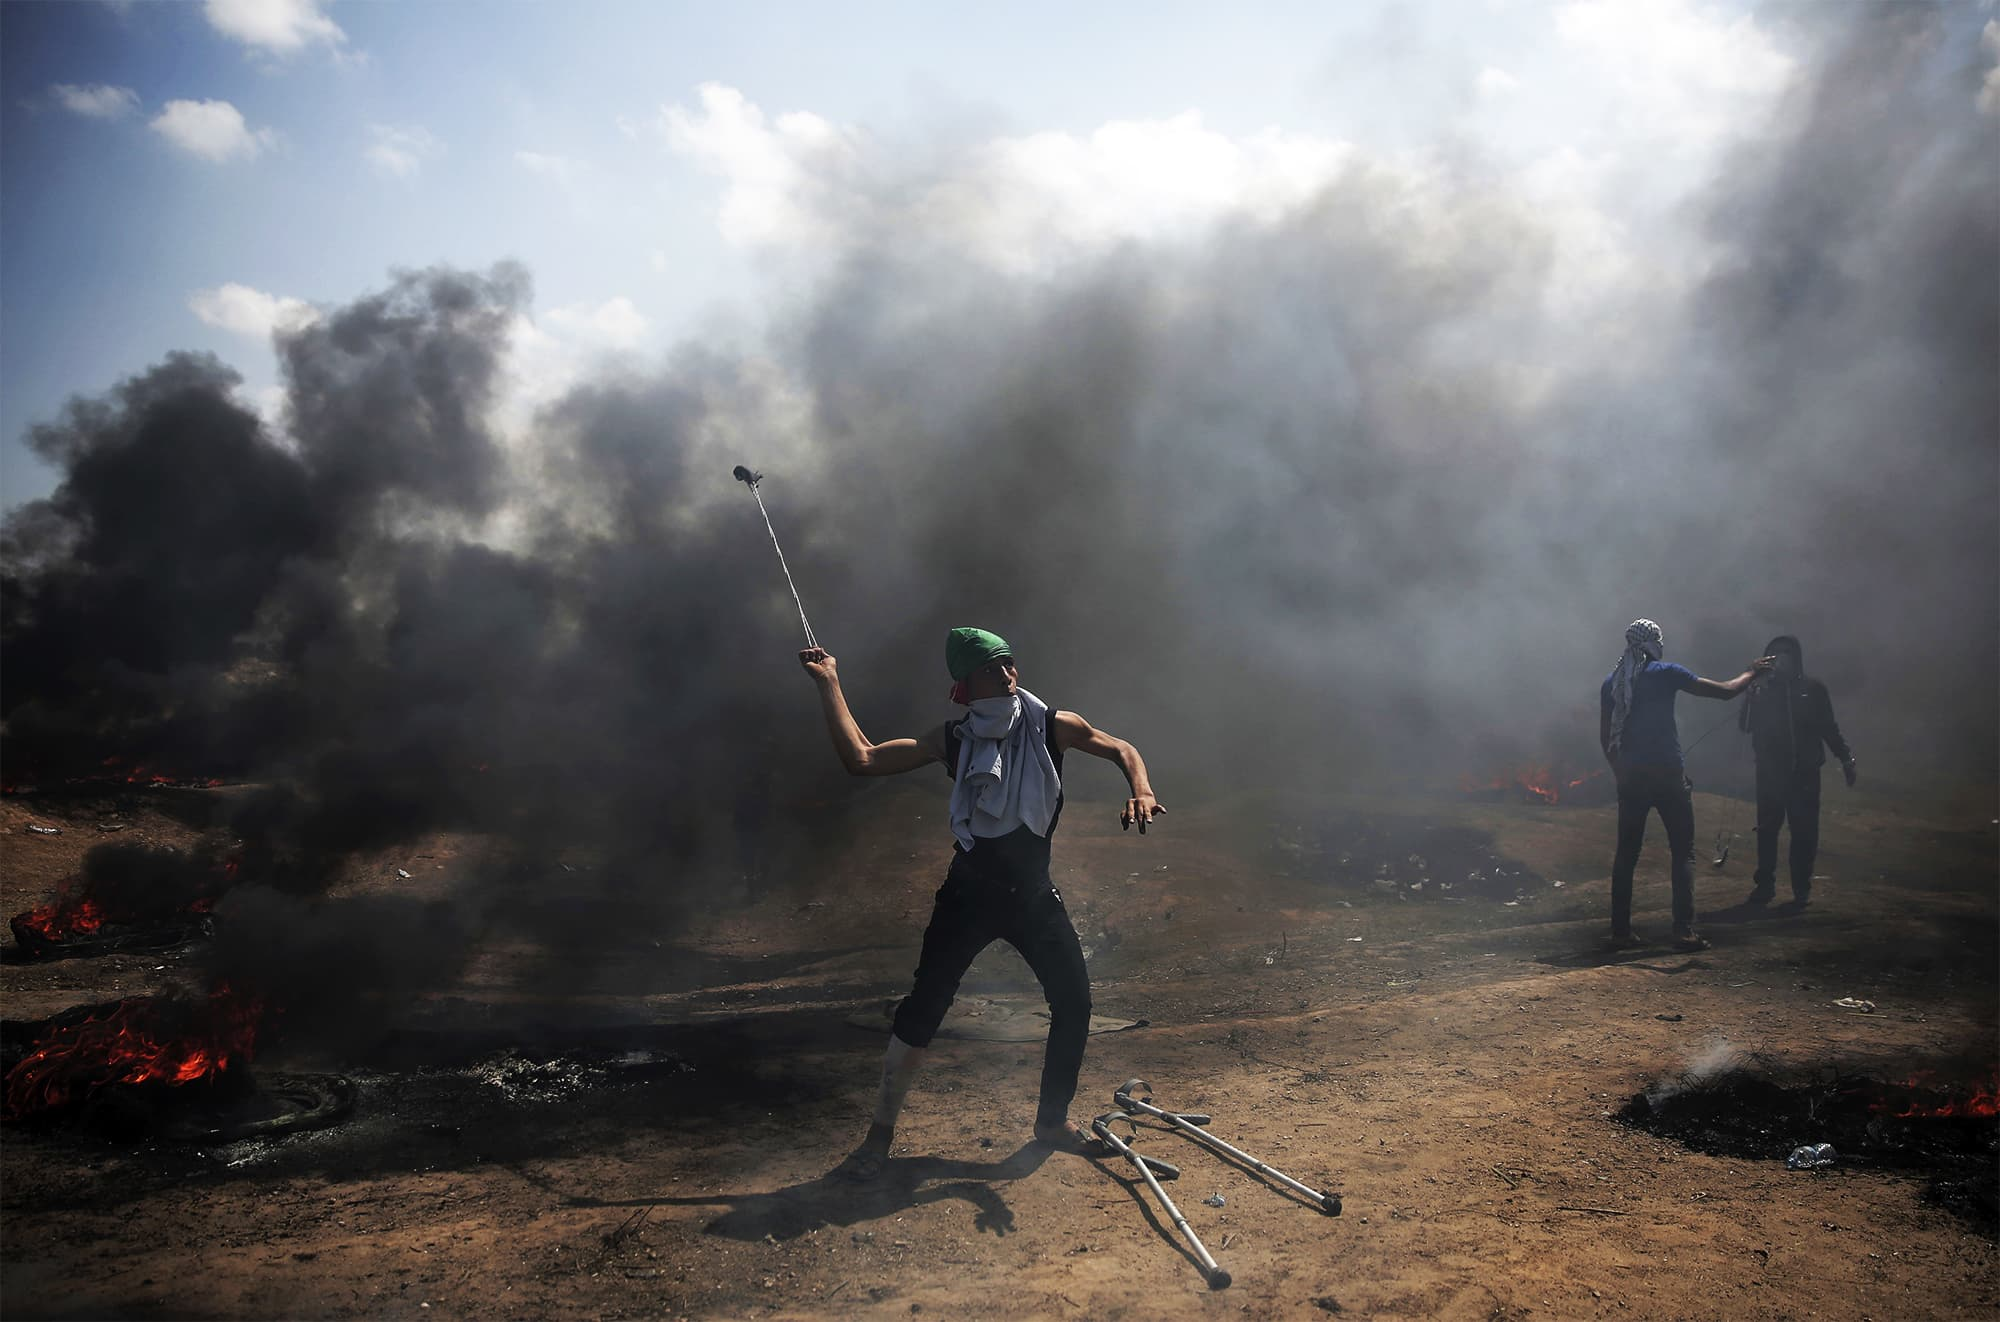 Palestinian protesters hurl stones at Israeli troops during a protest on the Gaza Strip's border with Israel. ─ AP